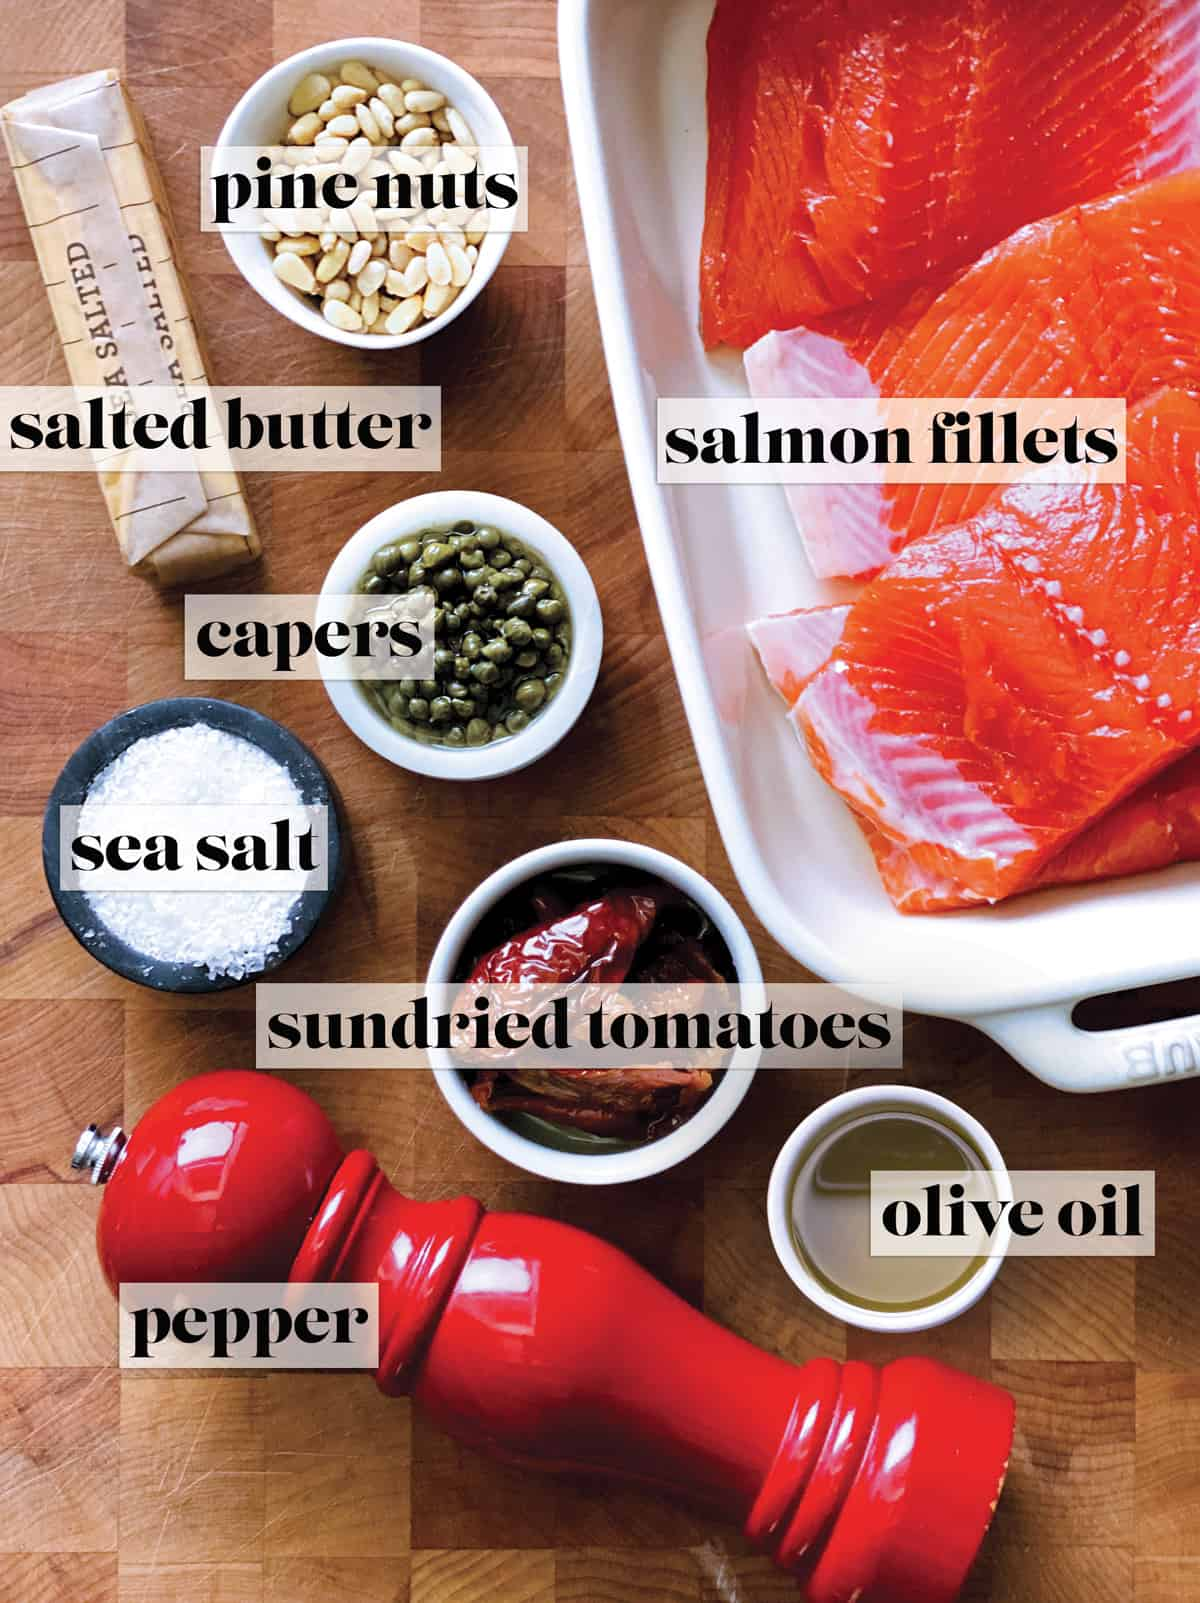 A baking pan with fresh salmon fillets, a pepper mill, a bowl with sundried tomatoes, a bowl with pine nuts, a bowl with capers a bowl with olive oil and a bowl with salt and a stick of butter.